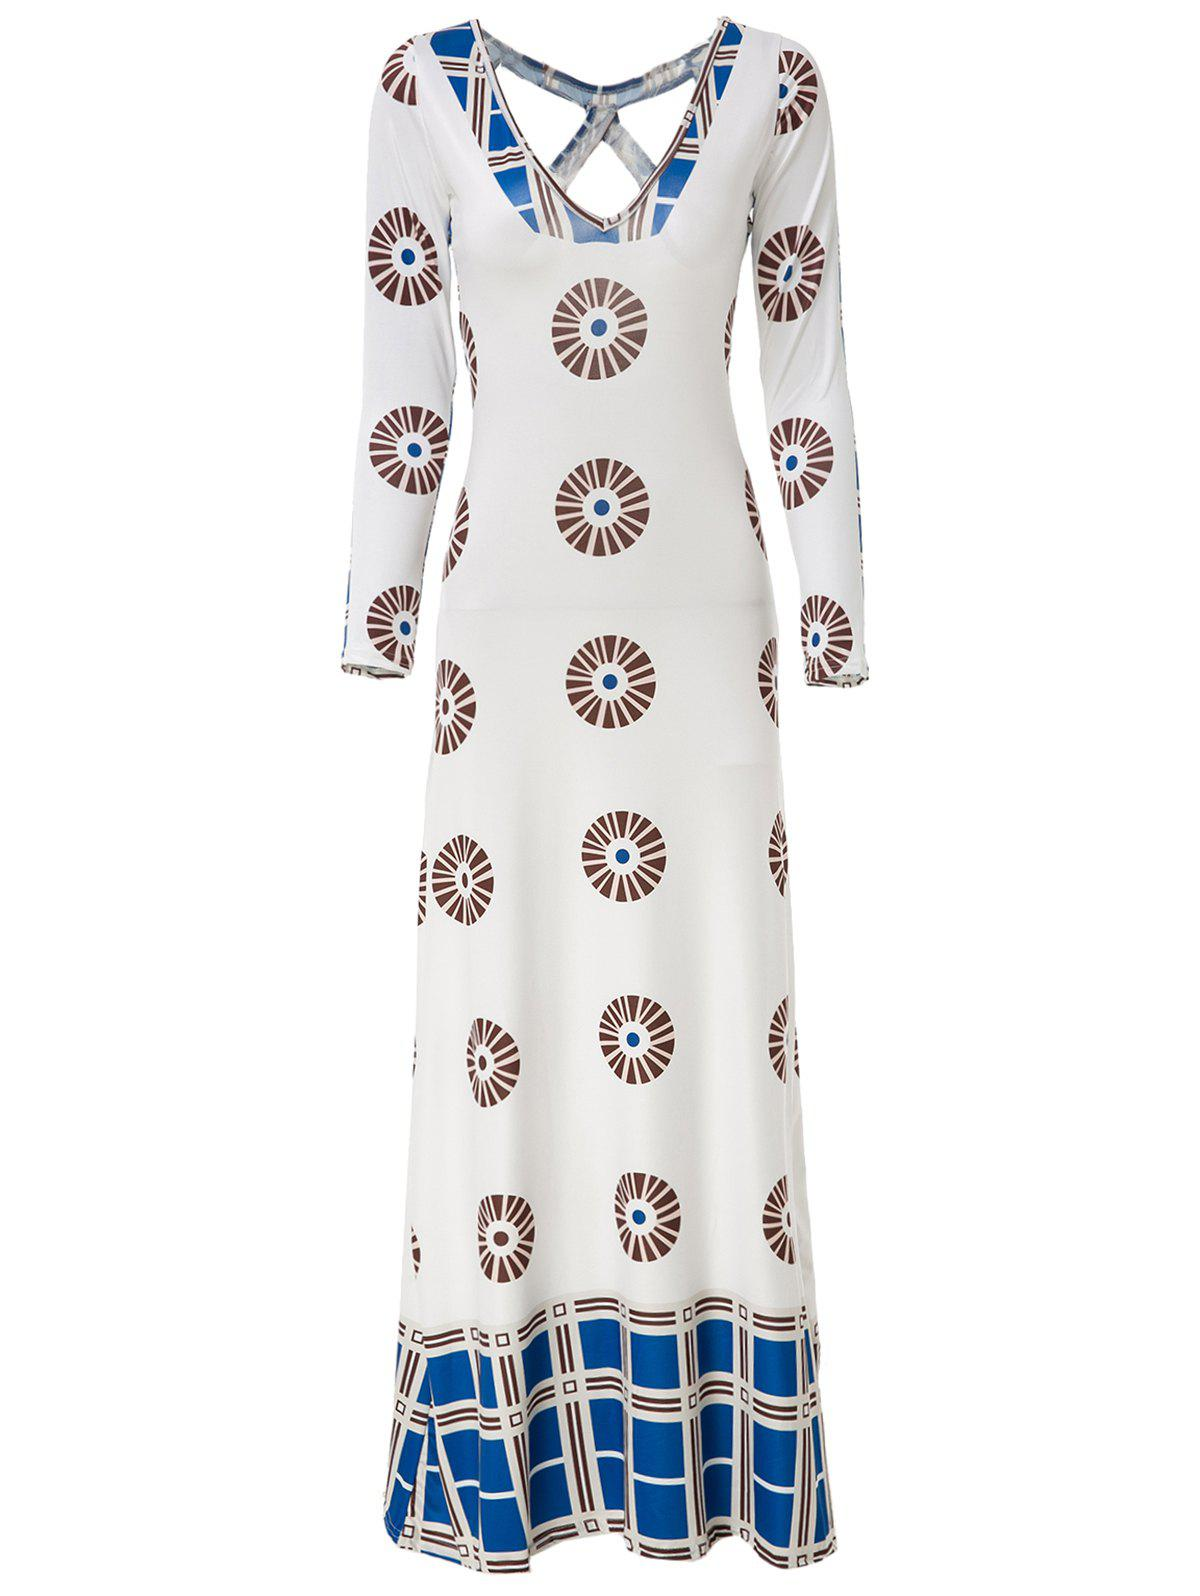 Ethnic Women's Plunging Neck Long Sleeve Printed Backless Maxi Dress - WHITE M